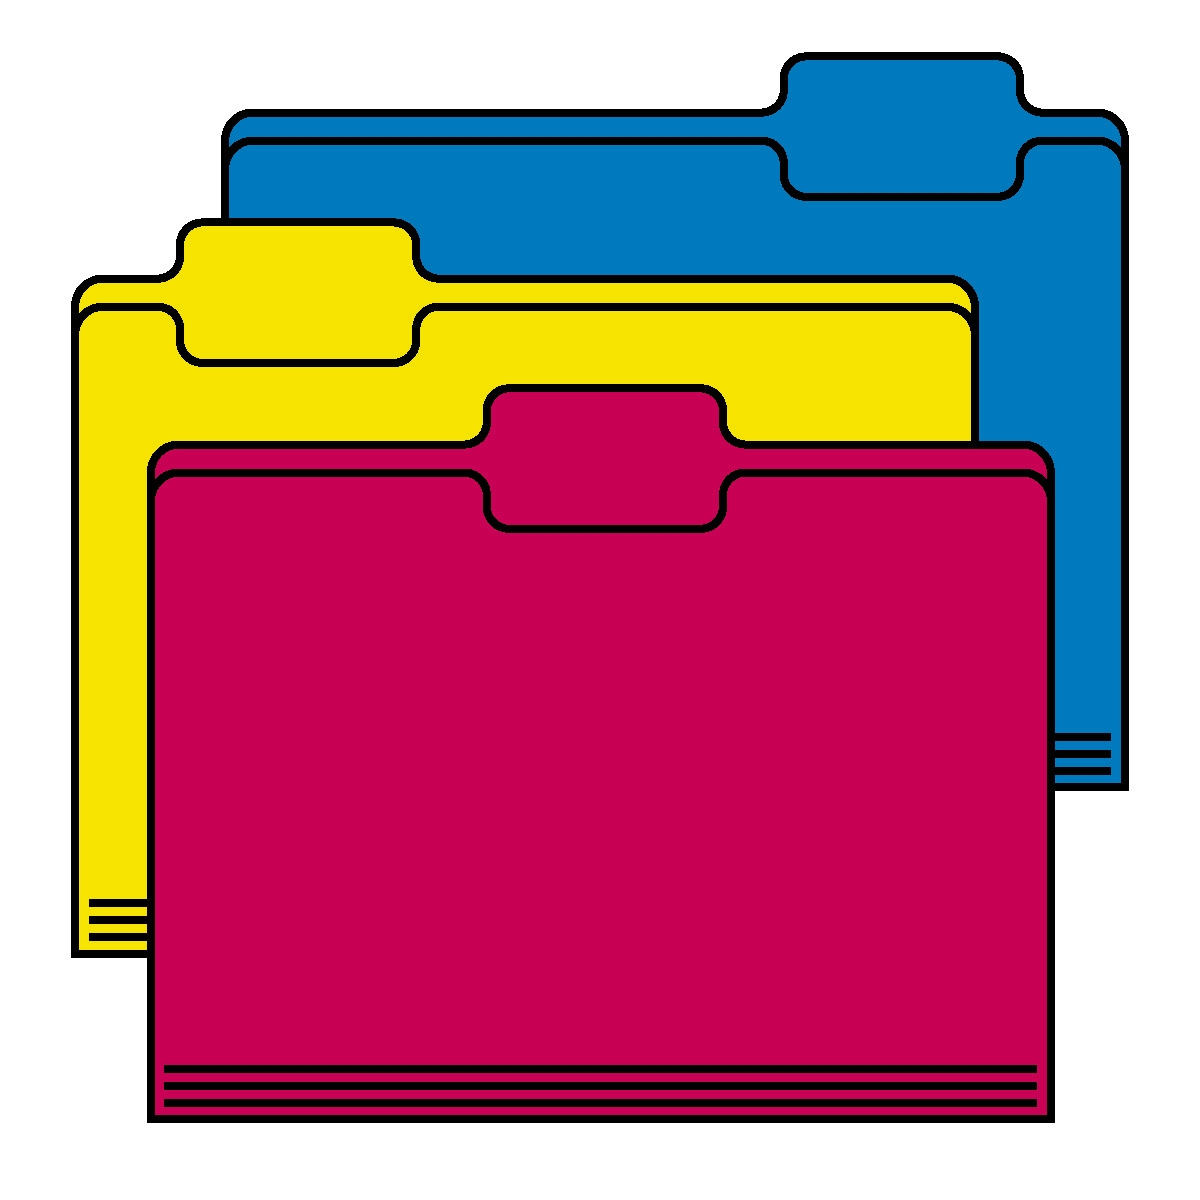 Folder clipart box book. Awesome design digital collection